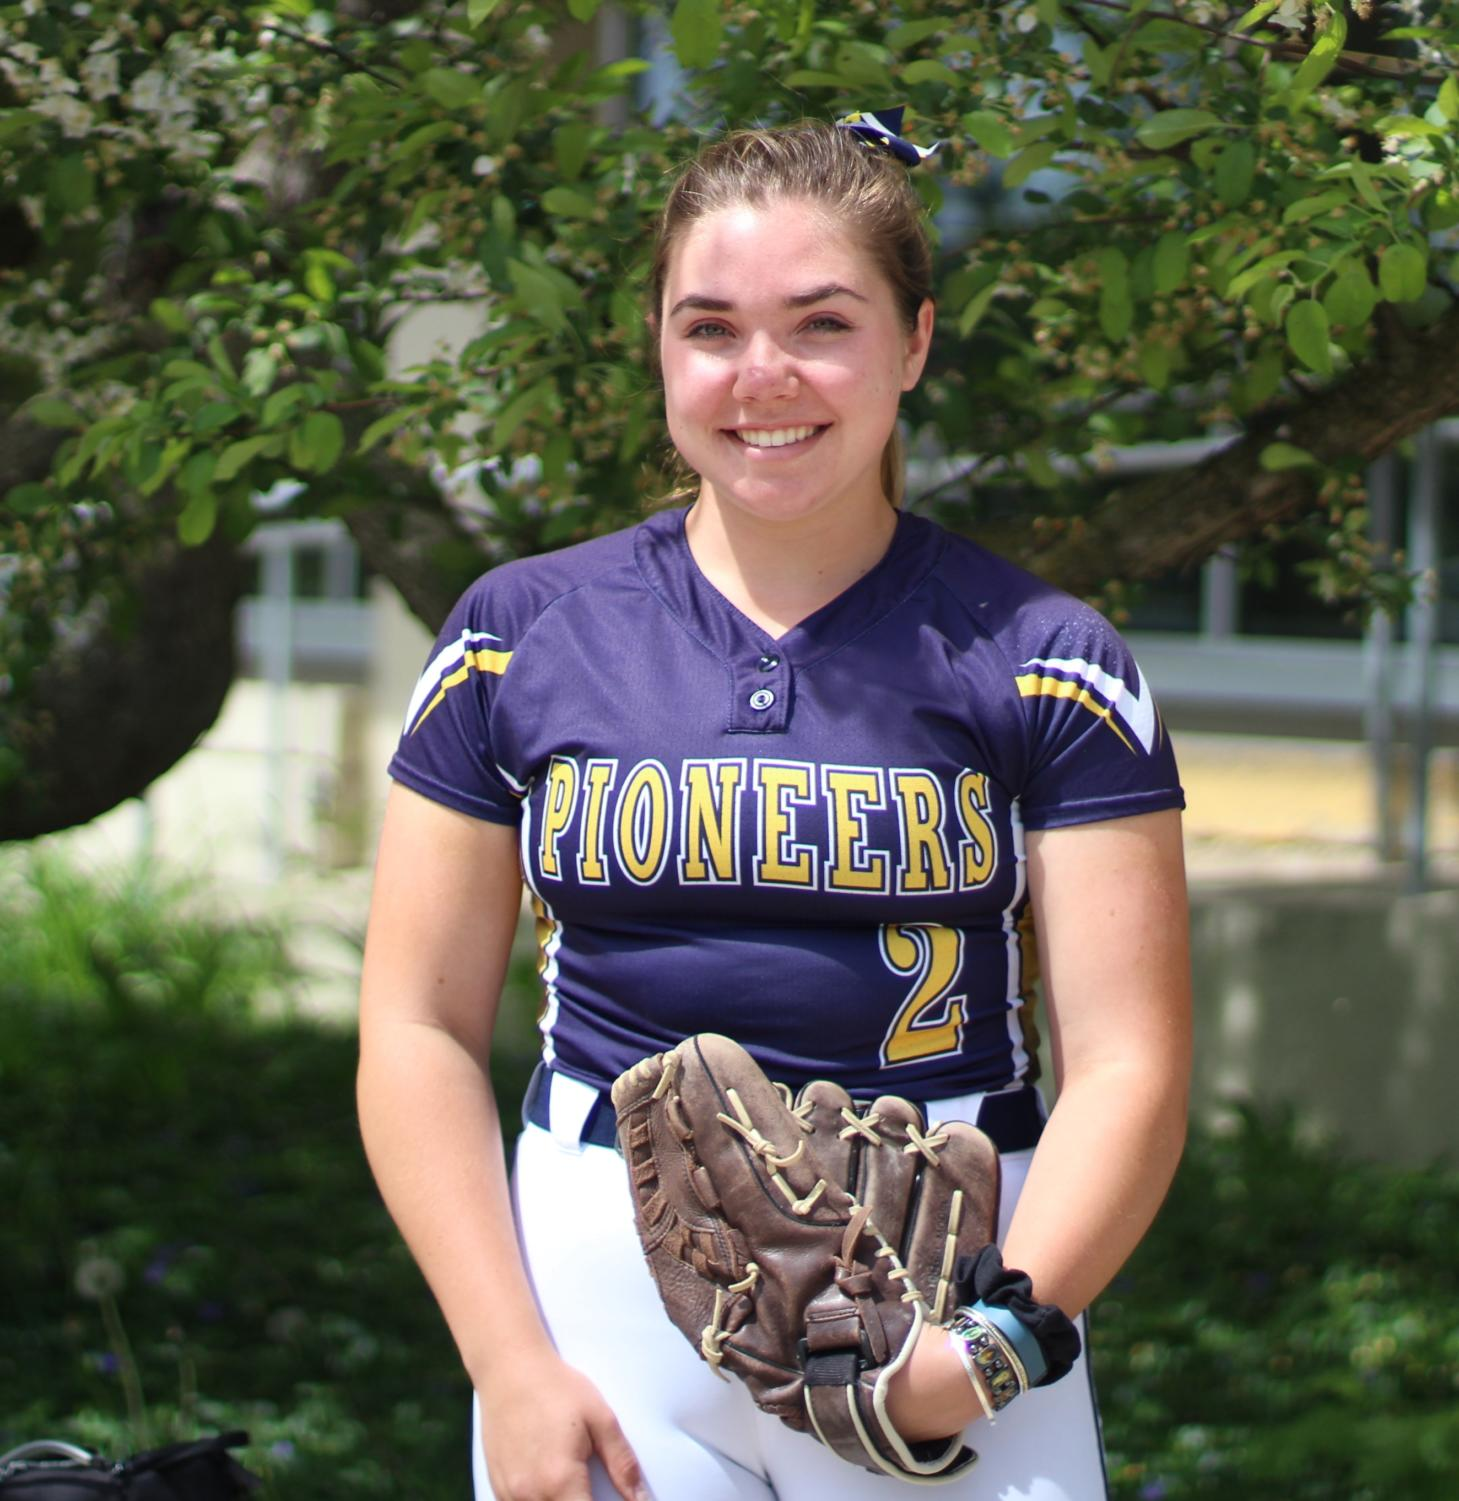 Bridget Hollen, one of the senior Varsity members of the softball team.